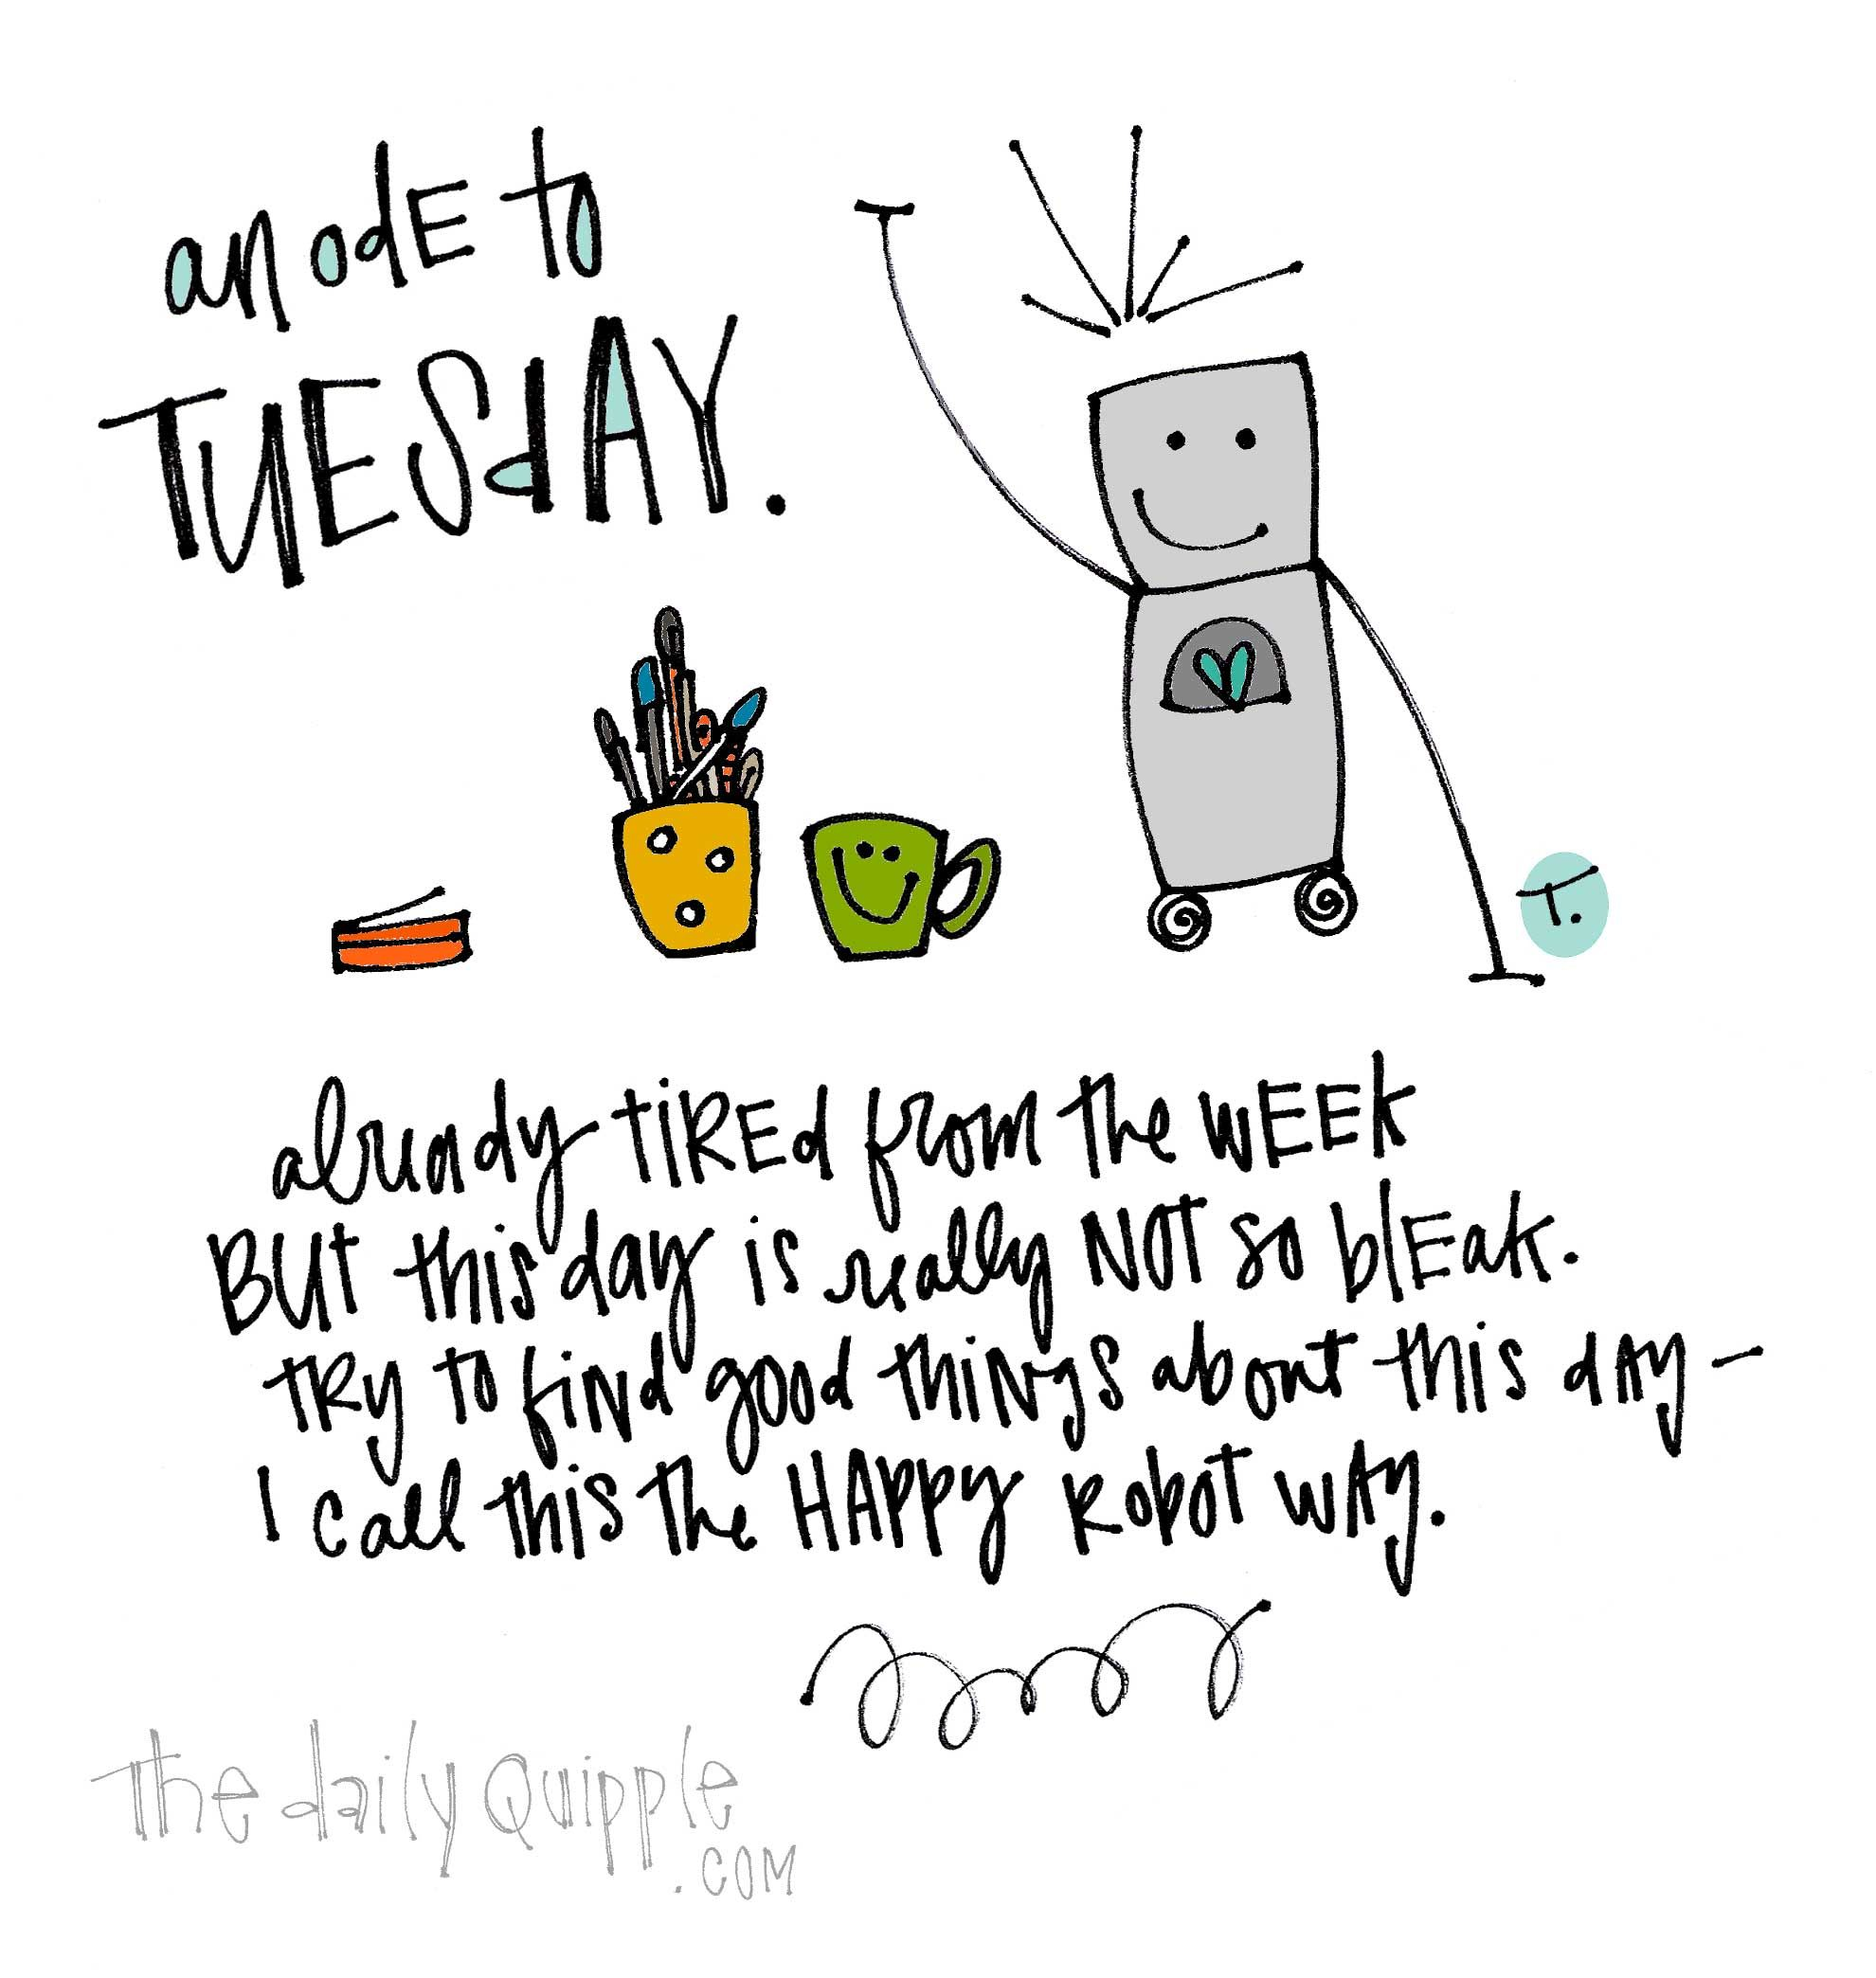 An Ode To Tuesday Already Tired From The Week But This